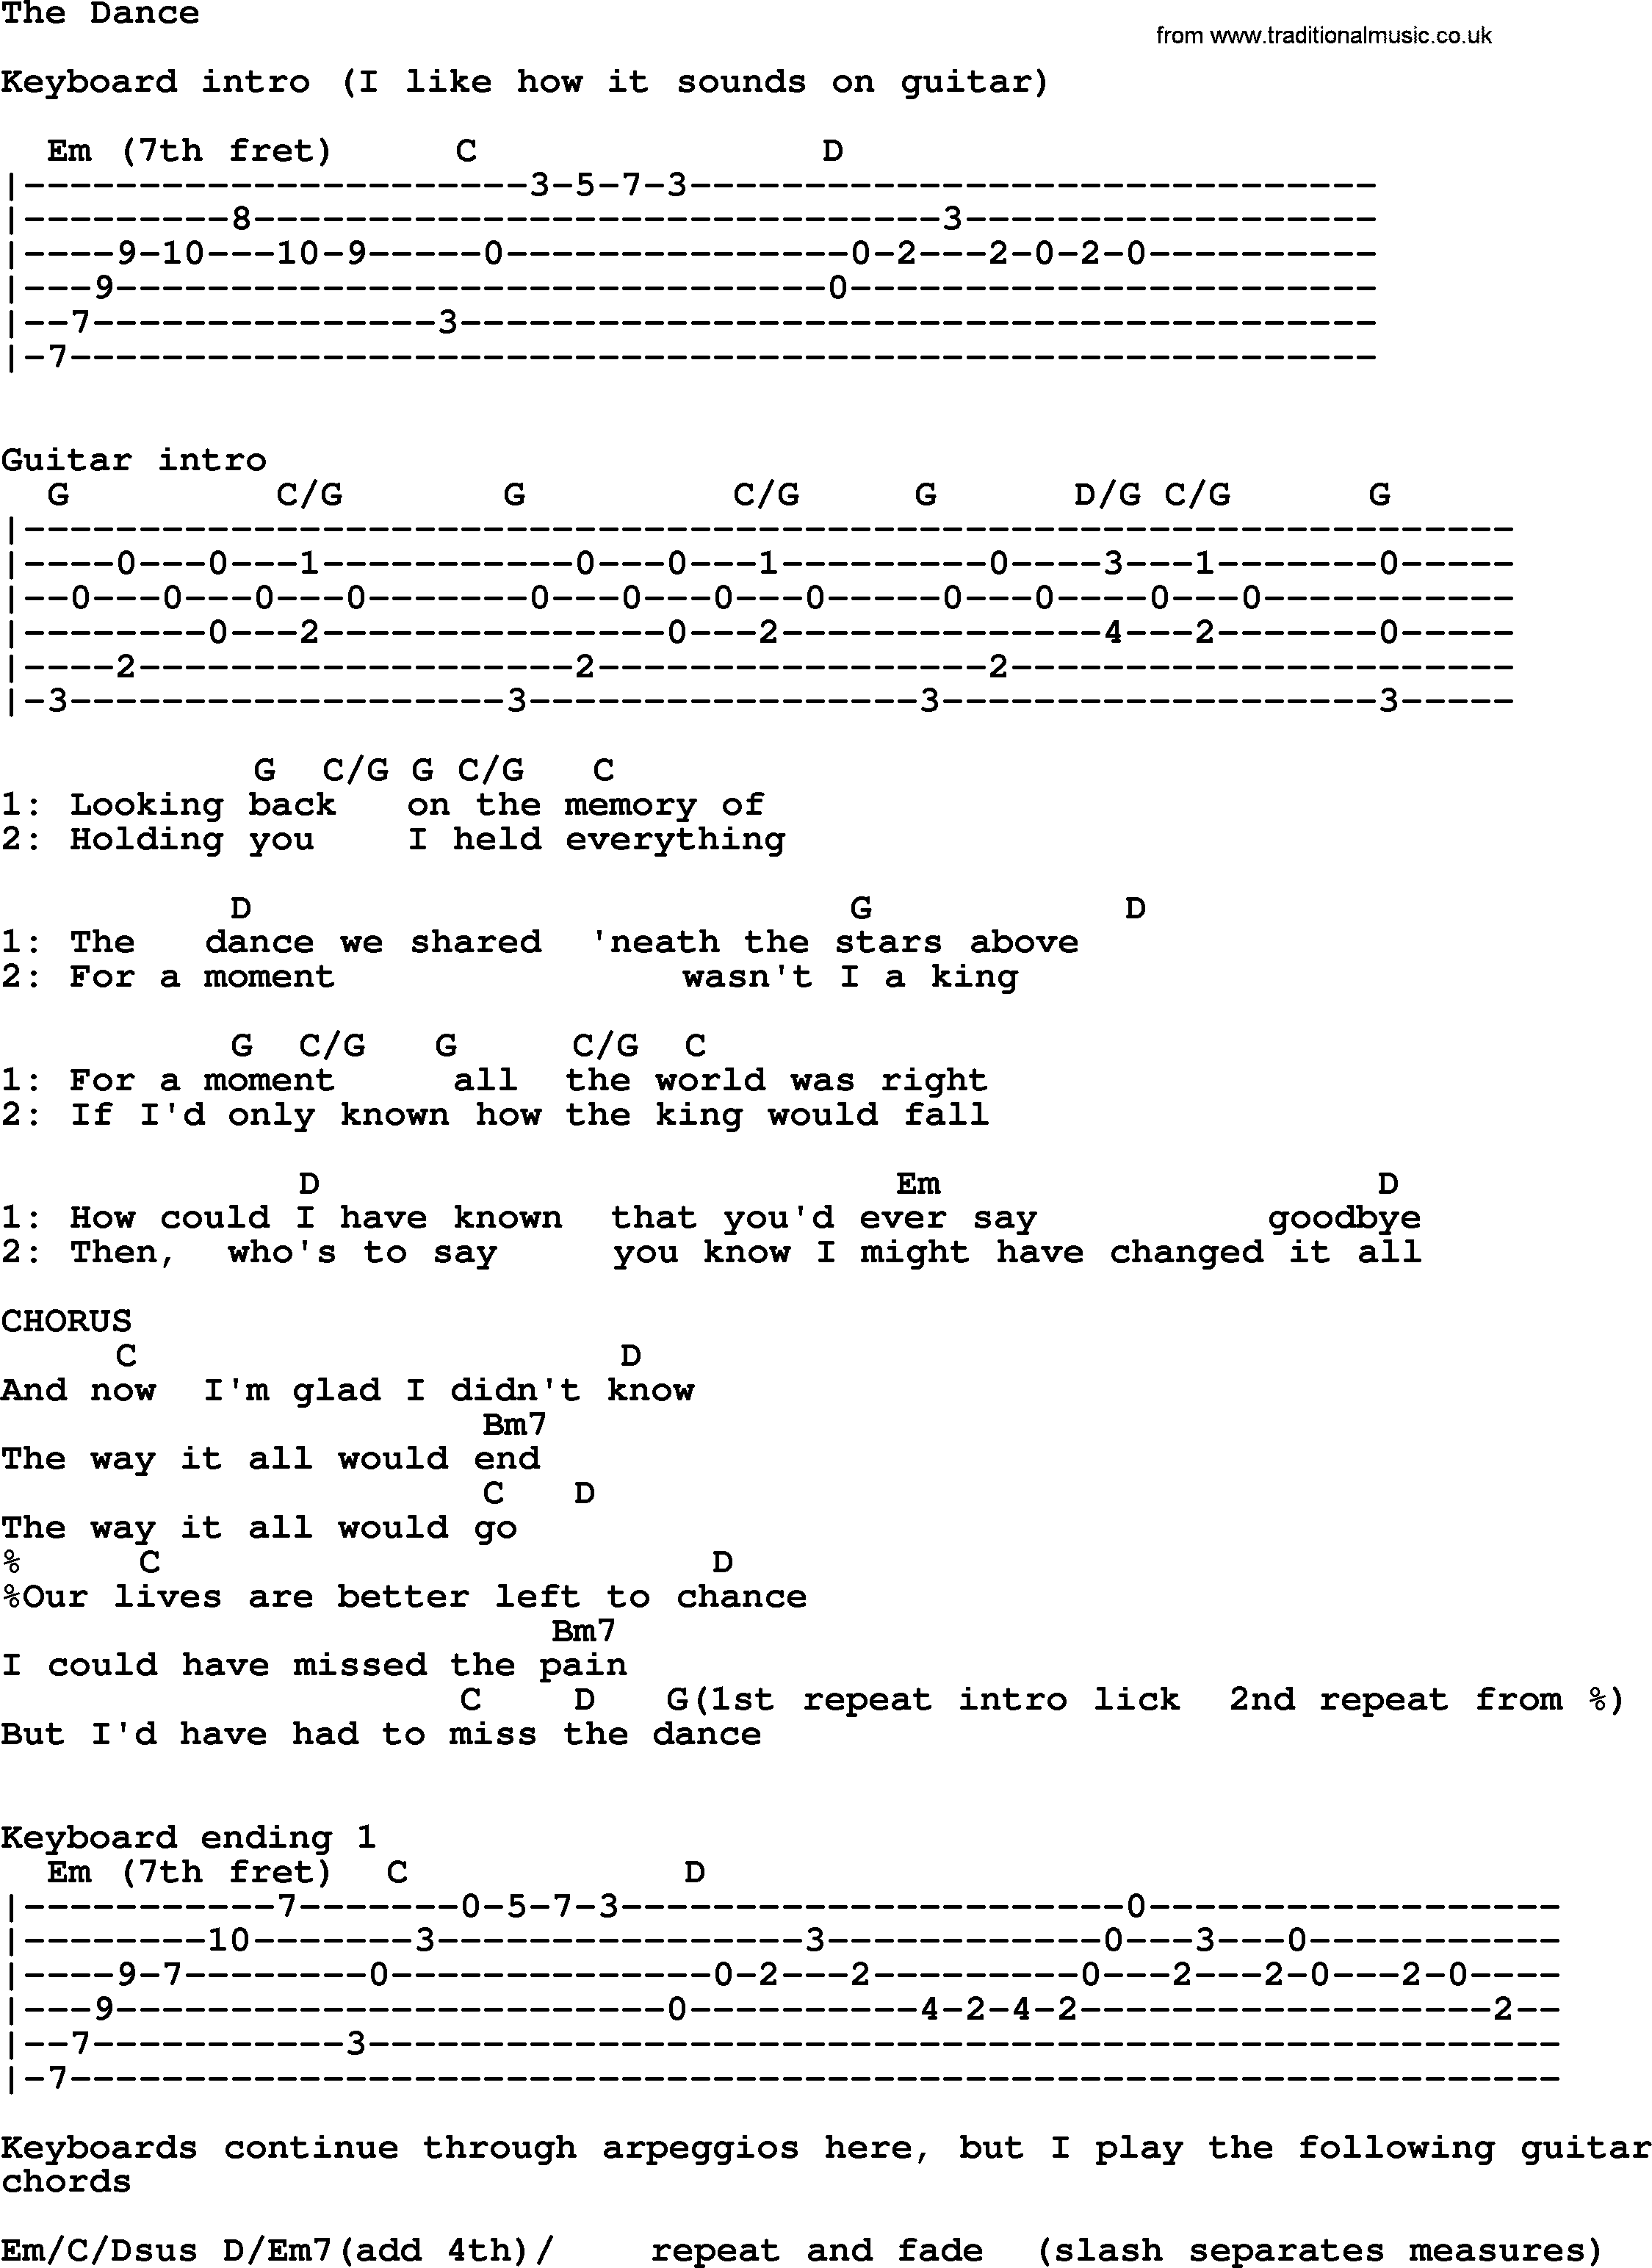 The Dance By Garth Brooks Lyrics And Chords